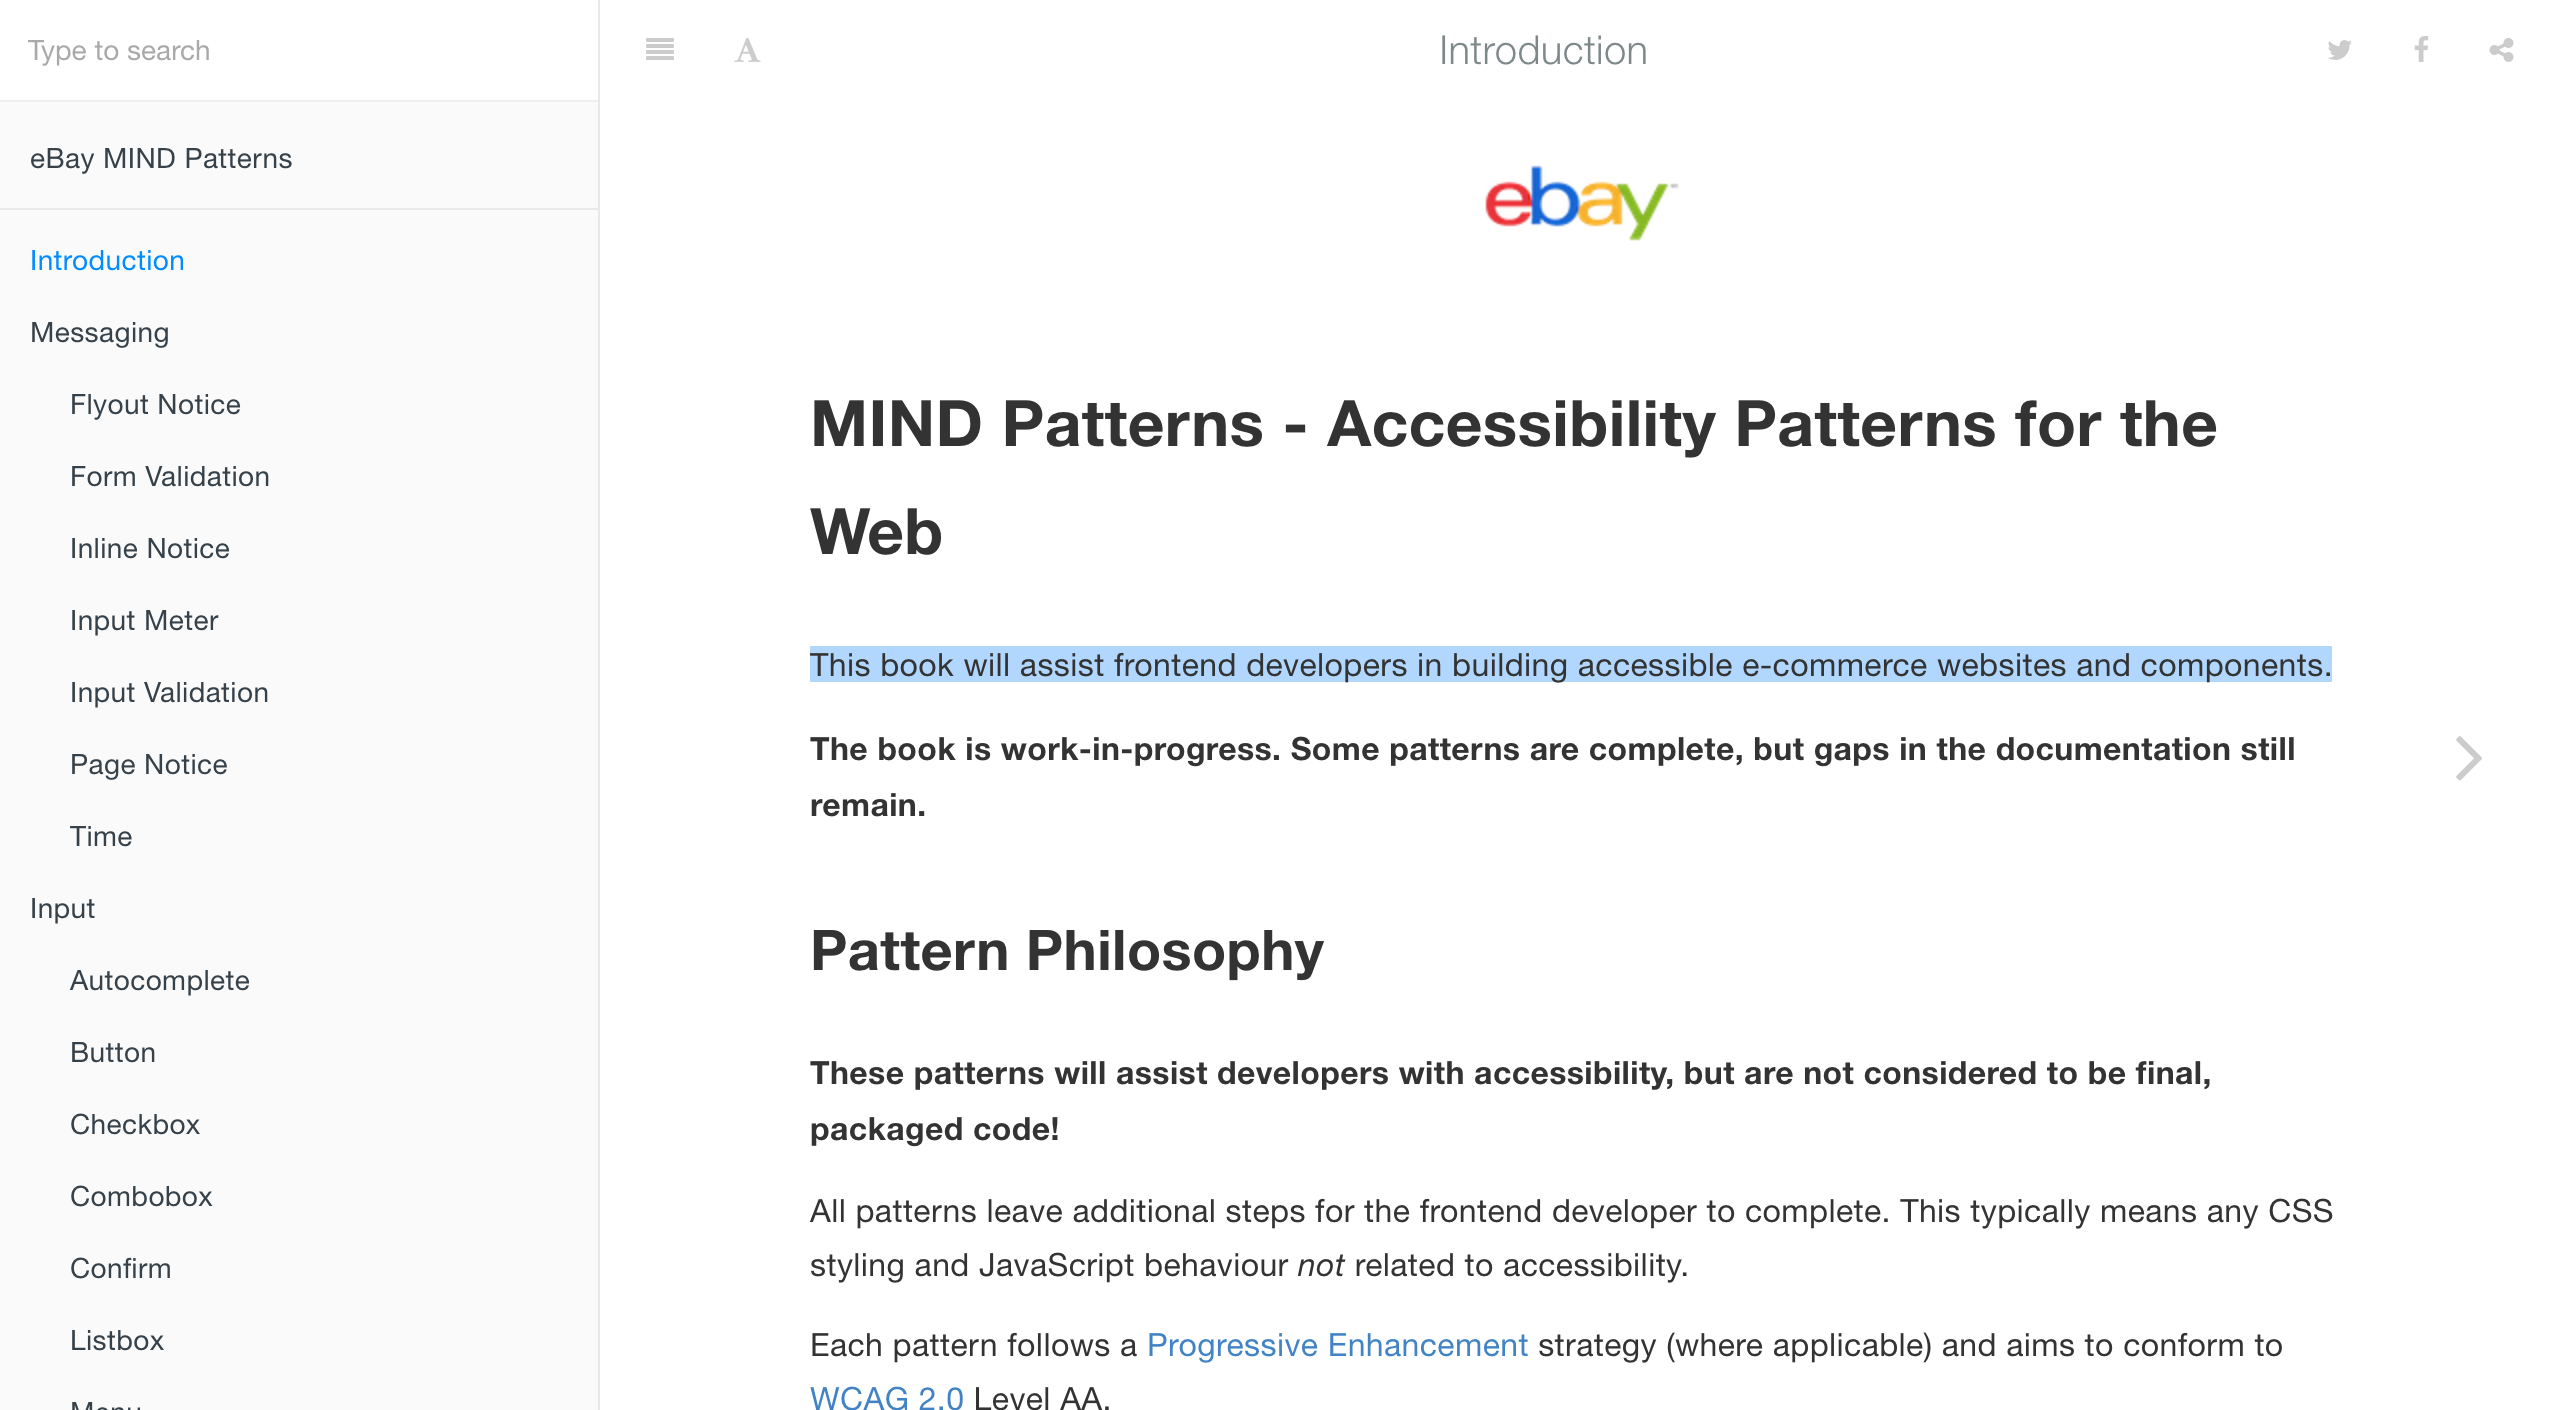 Ebay Mind Patterns